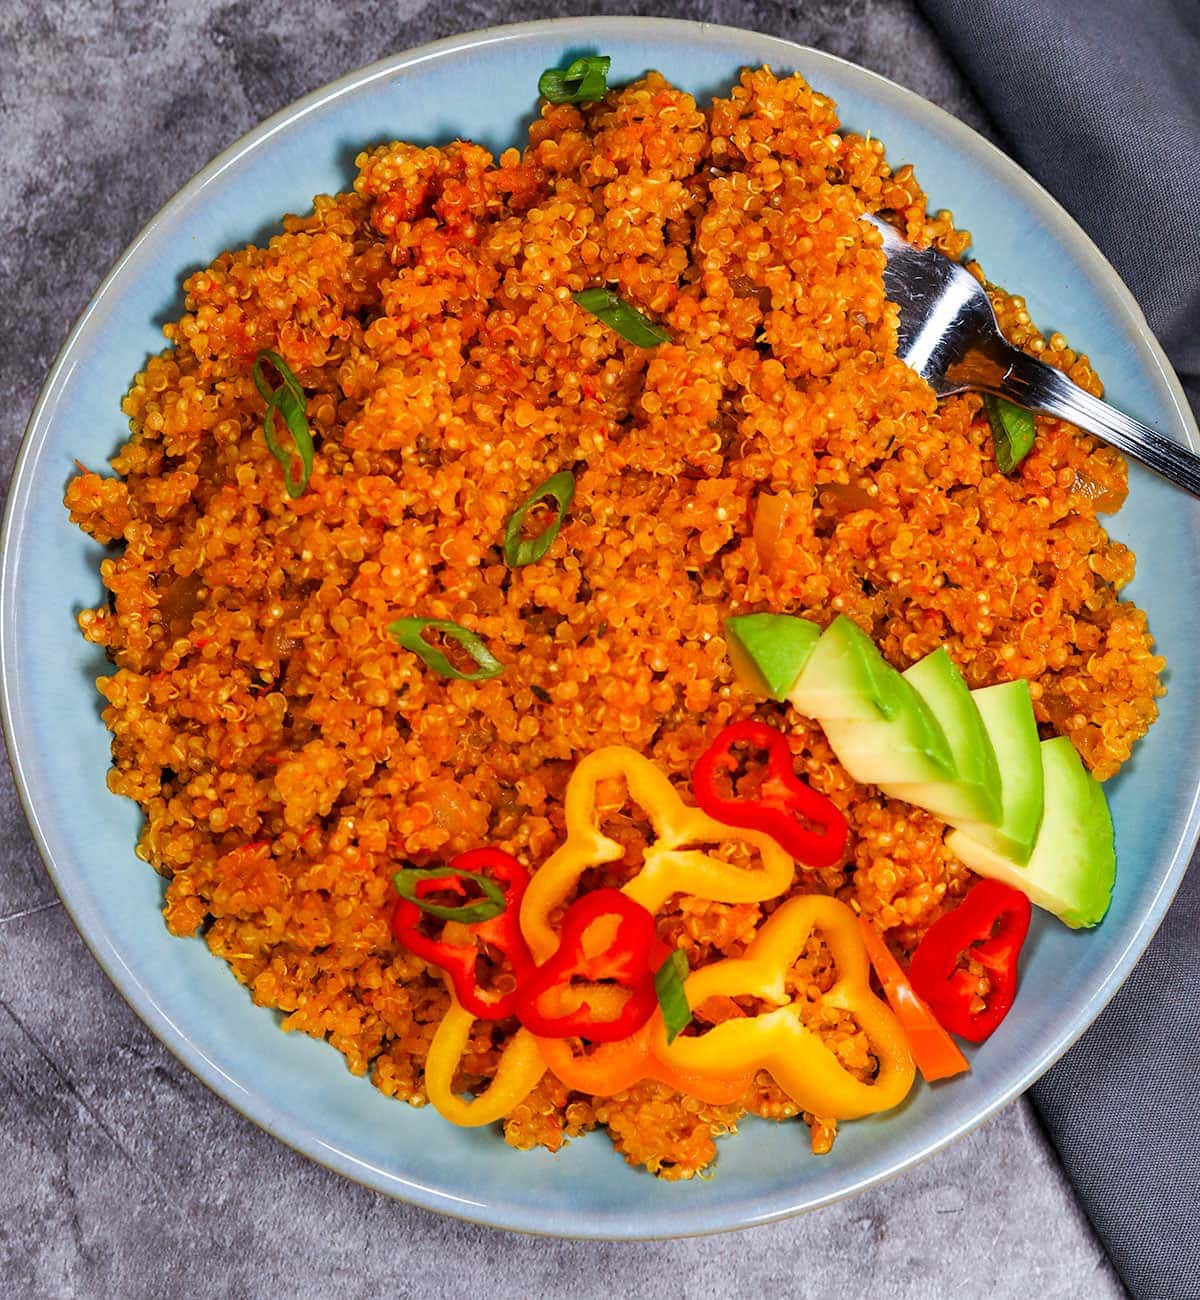 close up image of Jollof Quinoa in a blue bowl on a grey background